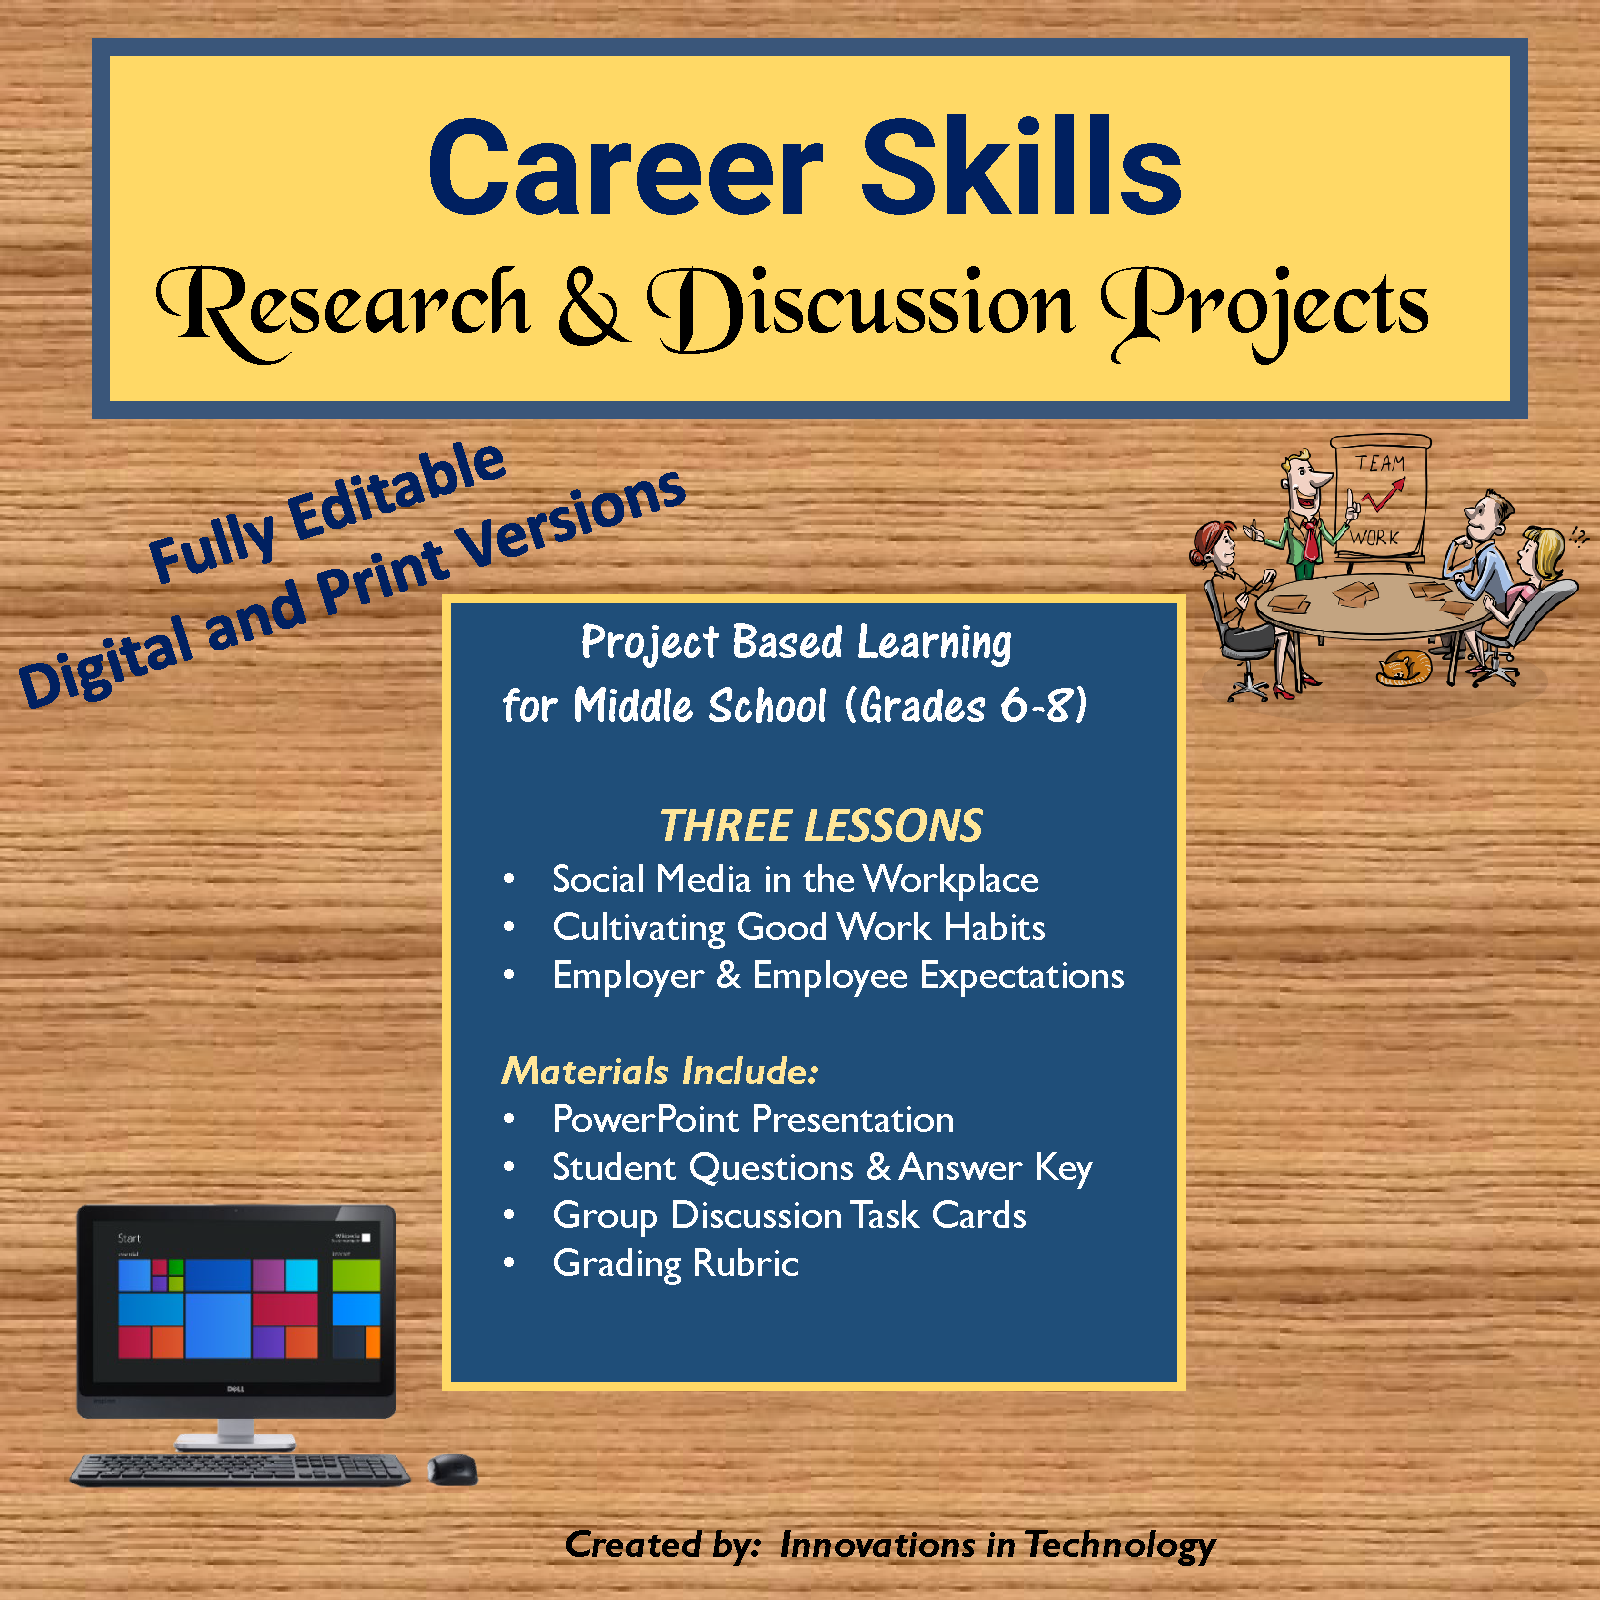 Career Skills Research and Discussion Projects | Career